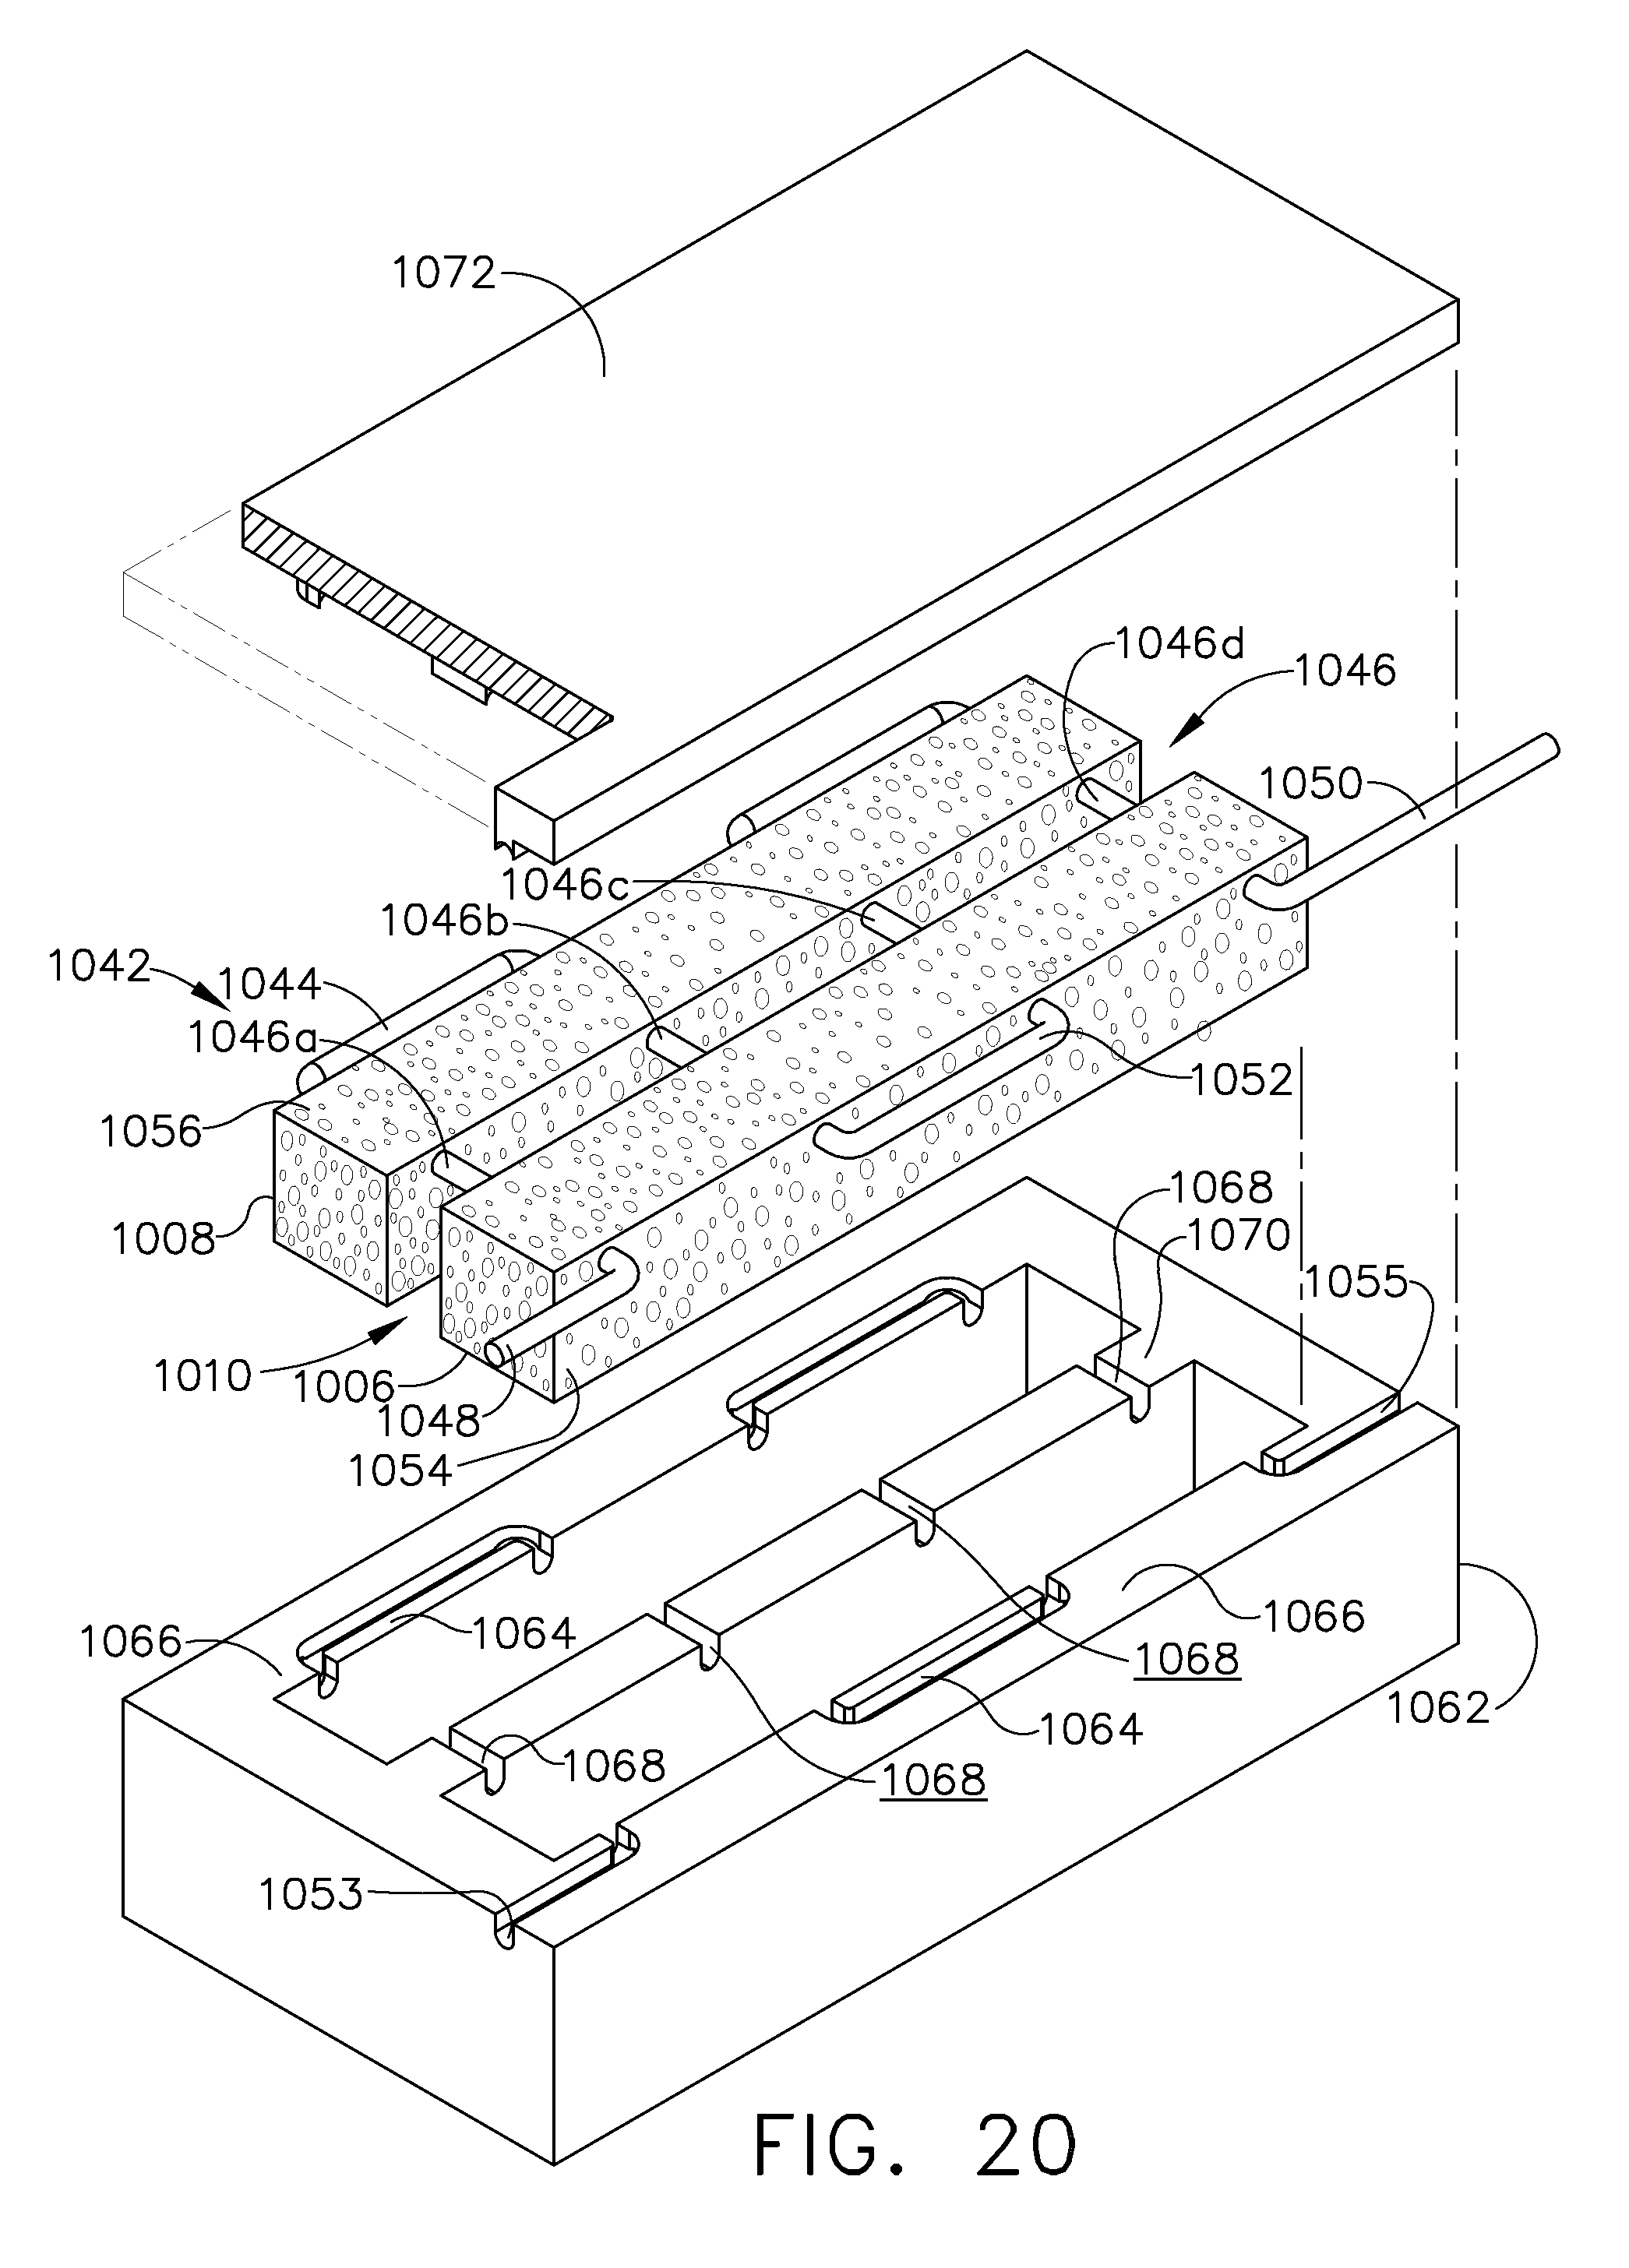 us9884456b2 implantable layers and methods for altering one or Brake Master Cylinder us9884456b2 implantable layers and methods for altering one or more properties of implantable layers for use with fastening instruments patents